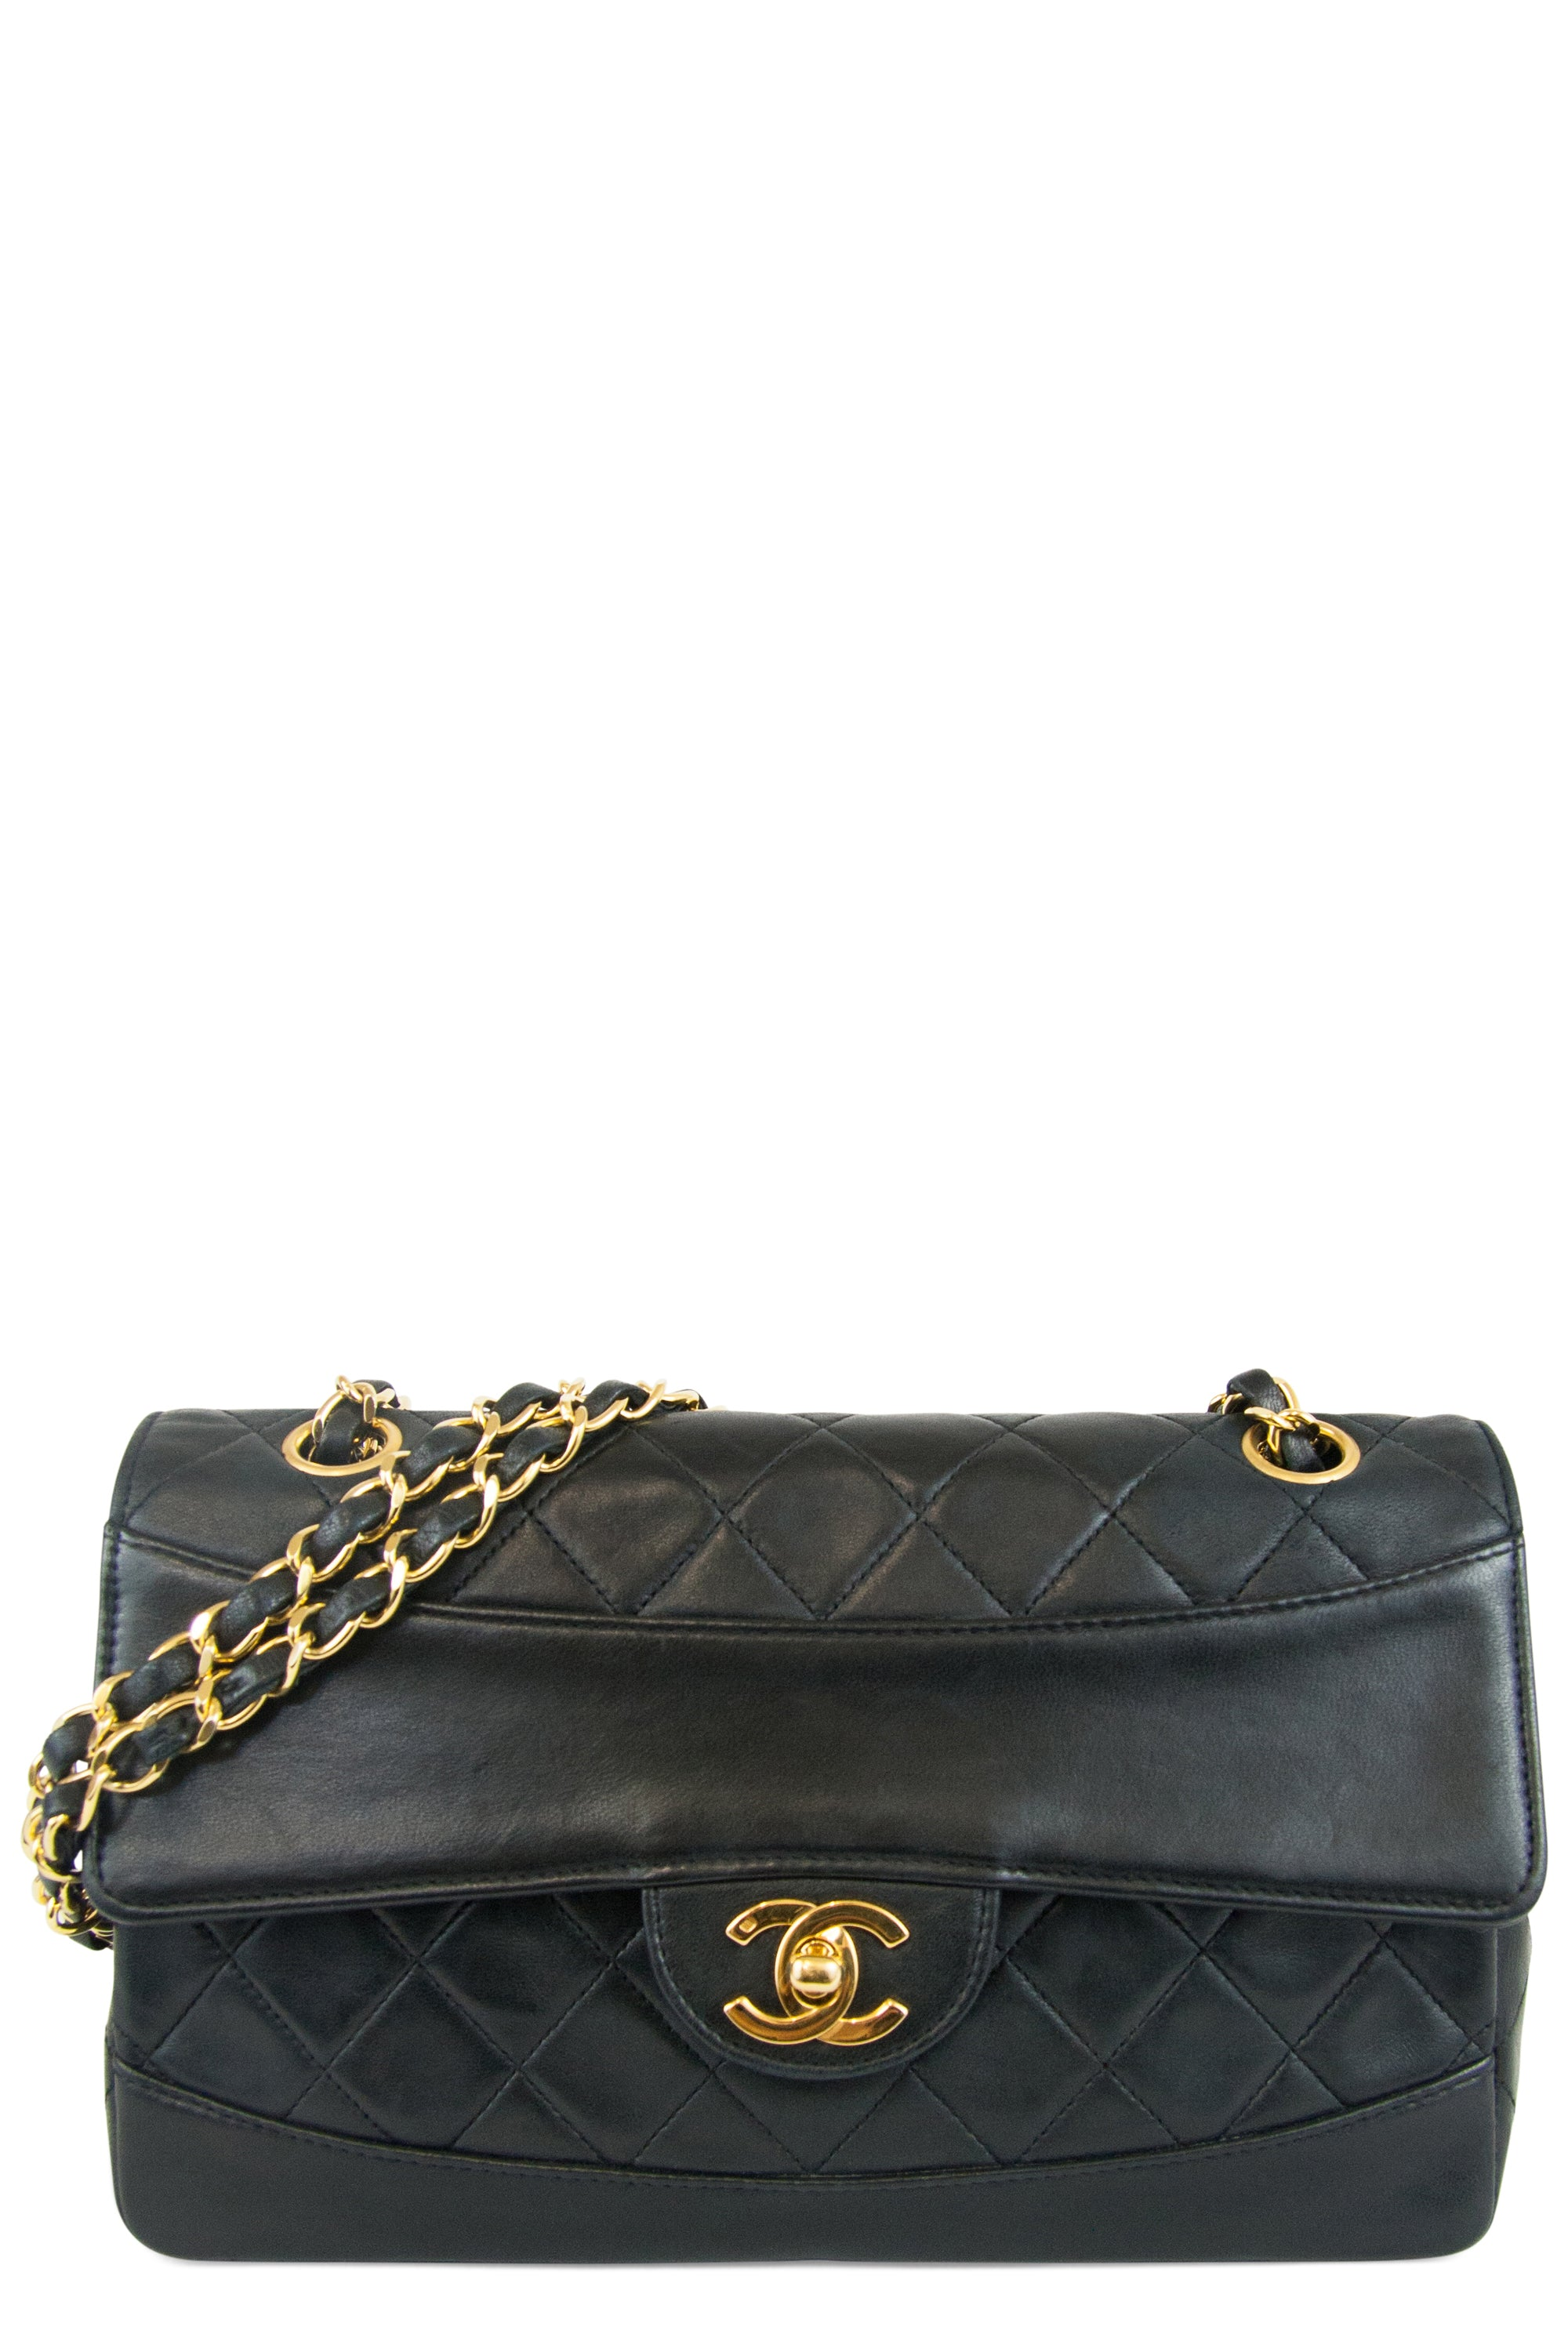 CHANEL Double Flap Tasche